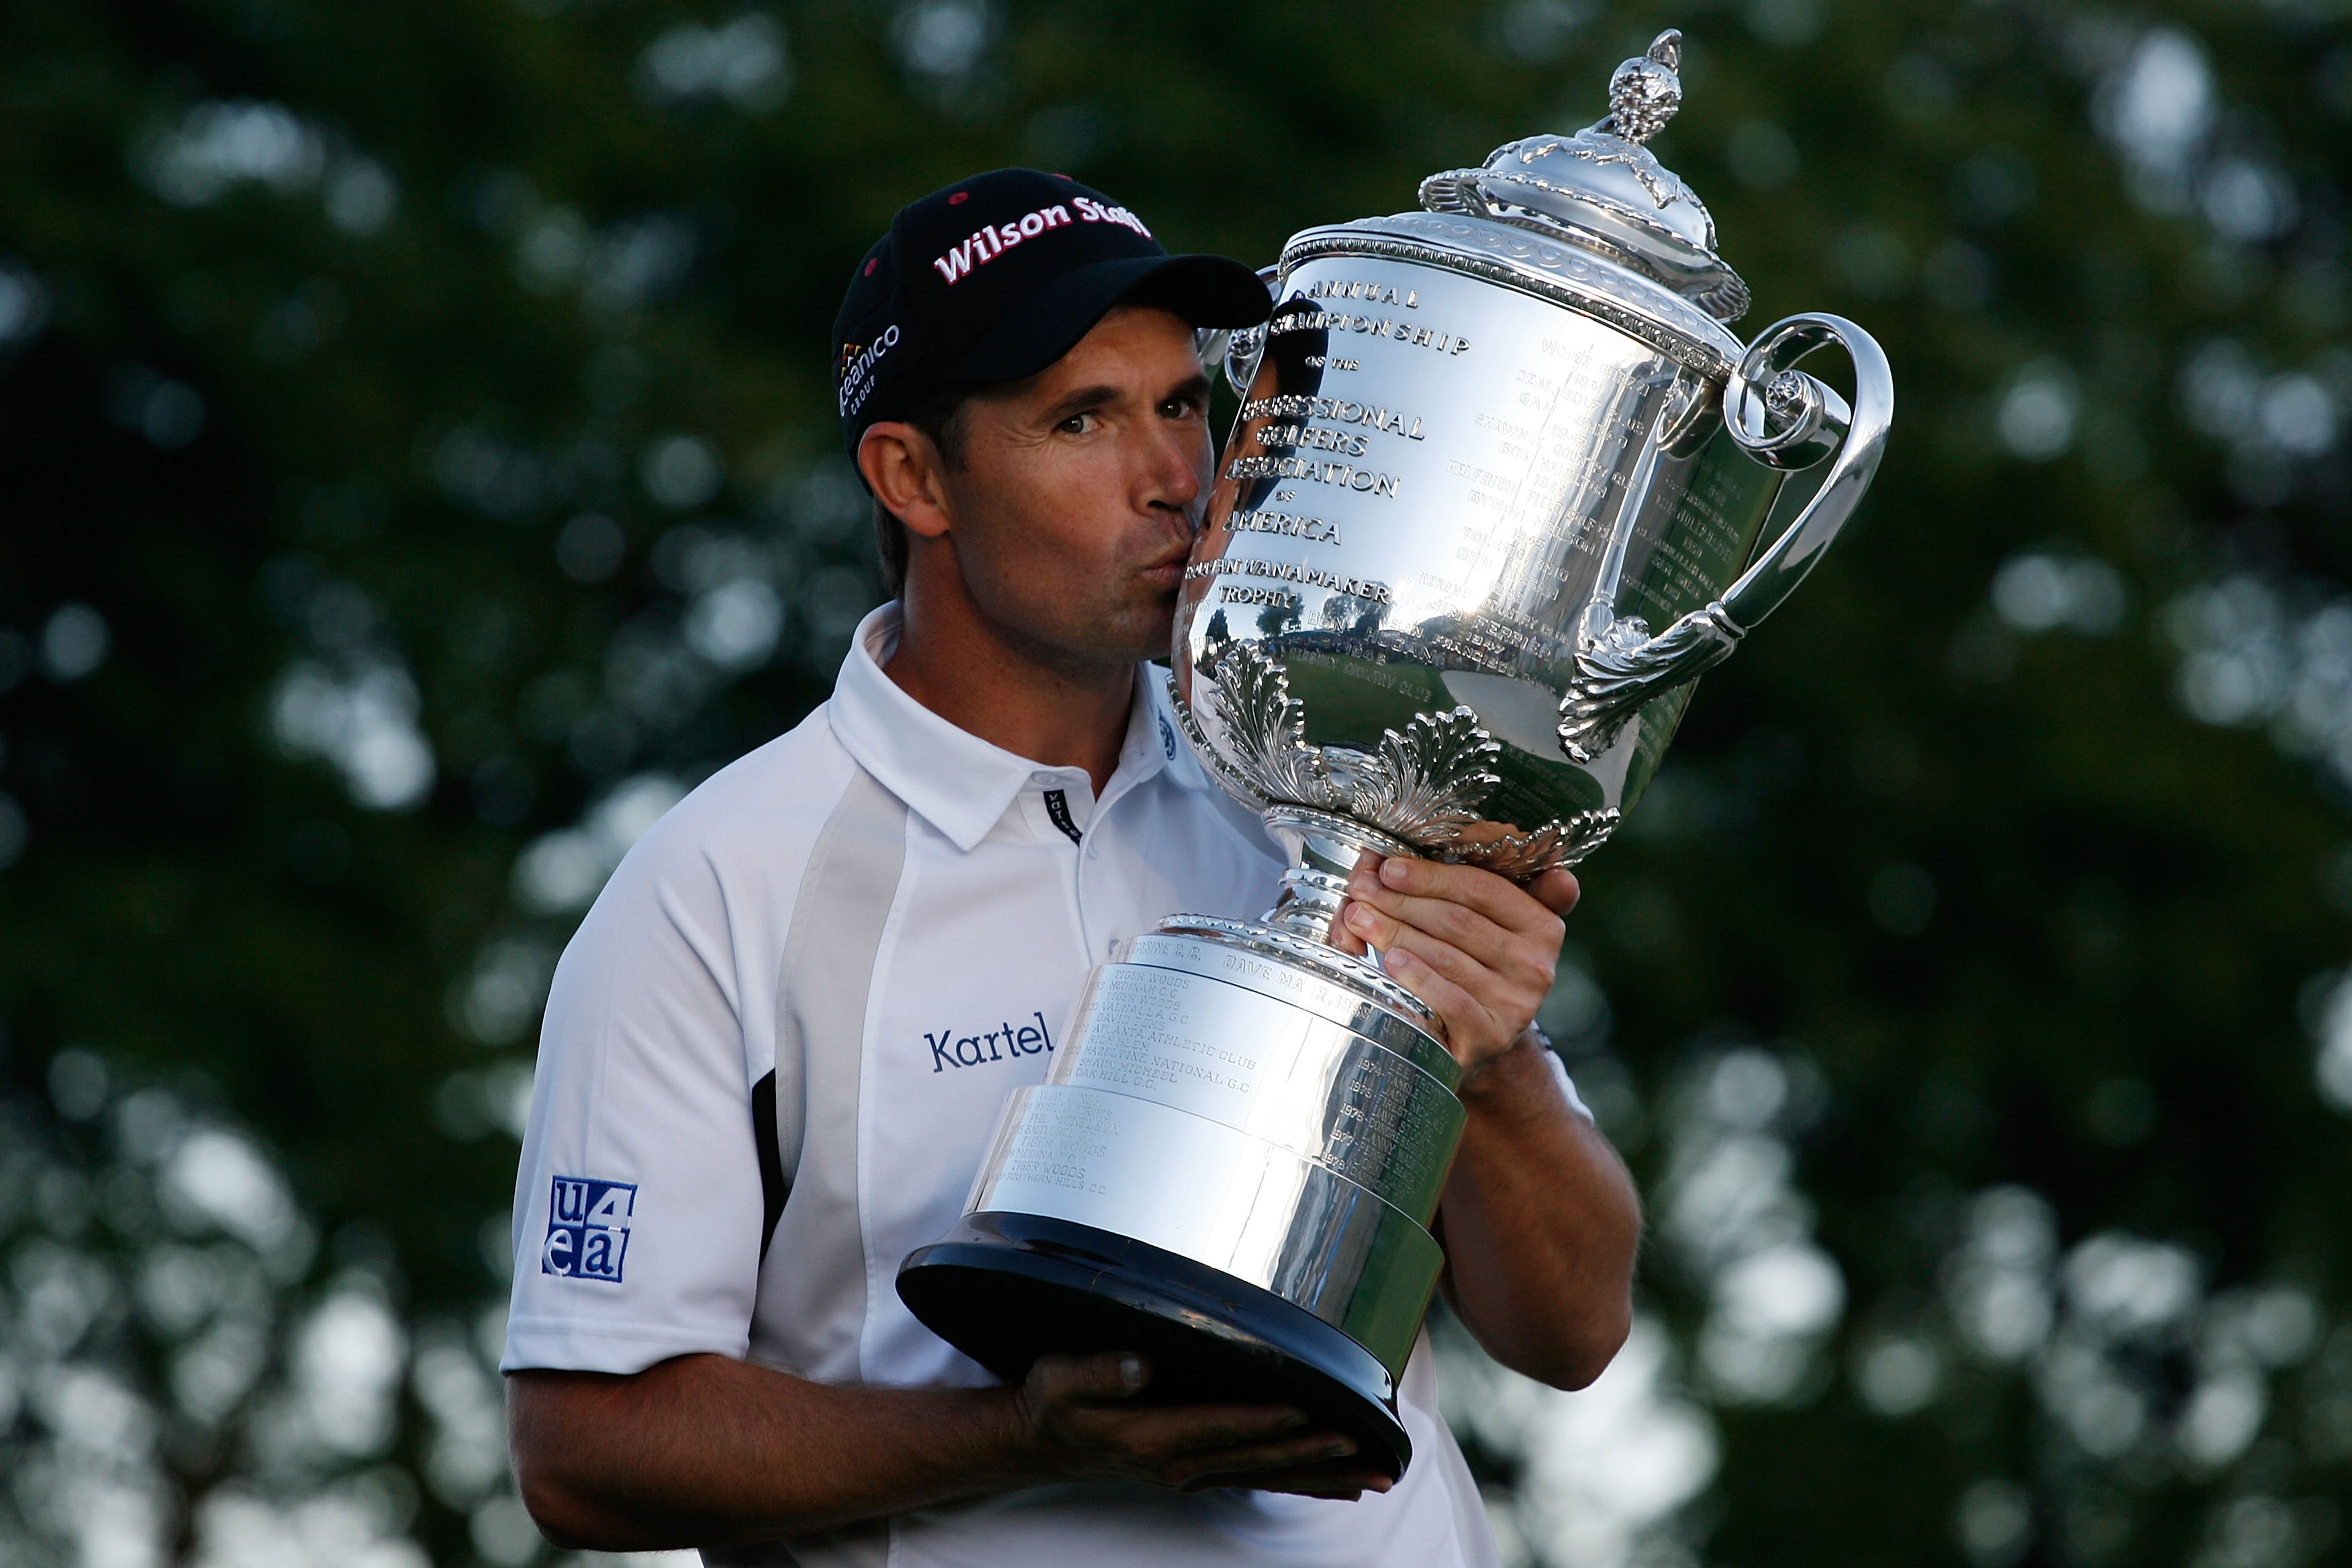 Padraig Harrington of Ireland celebrates his win while kissing the PGA Championship Trophy after winning the 90th PGA Championship at Oakland Hills Country Club.